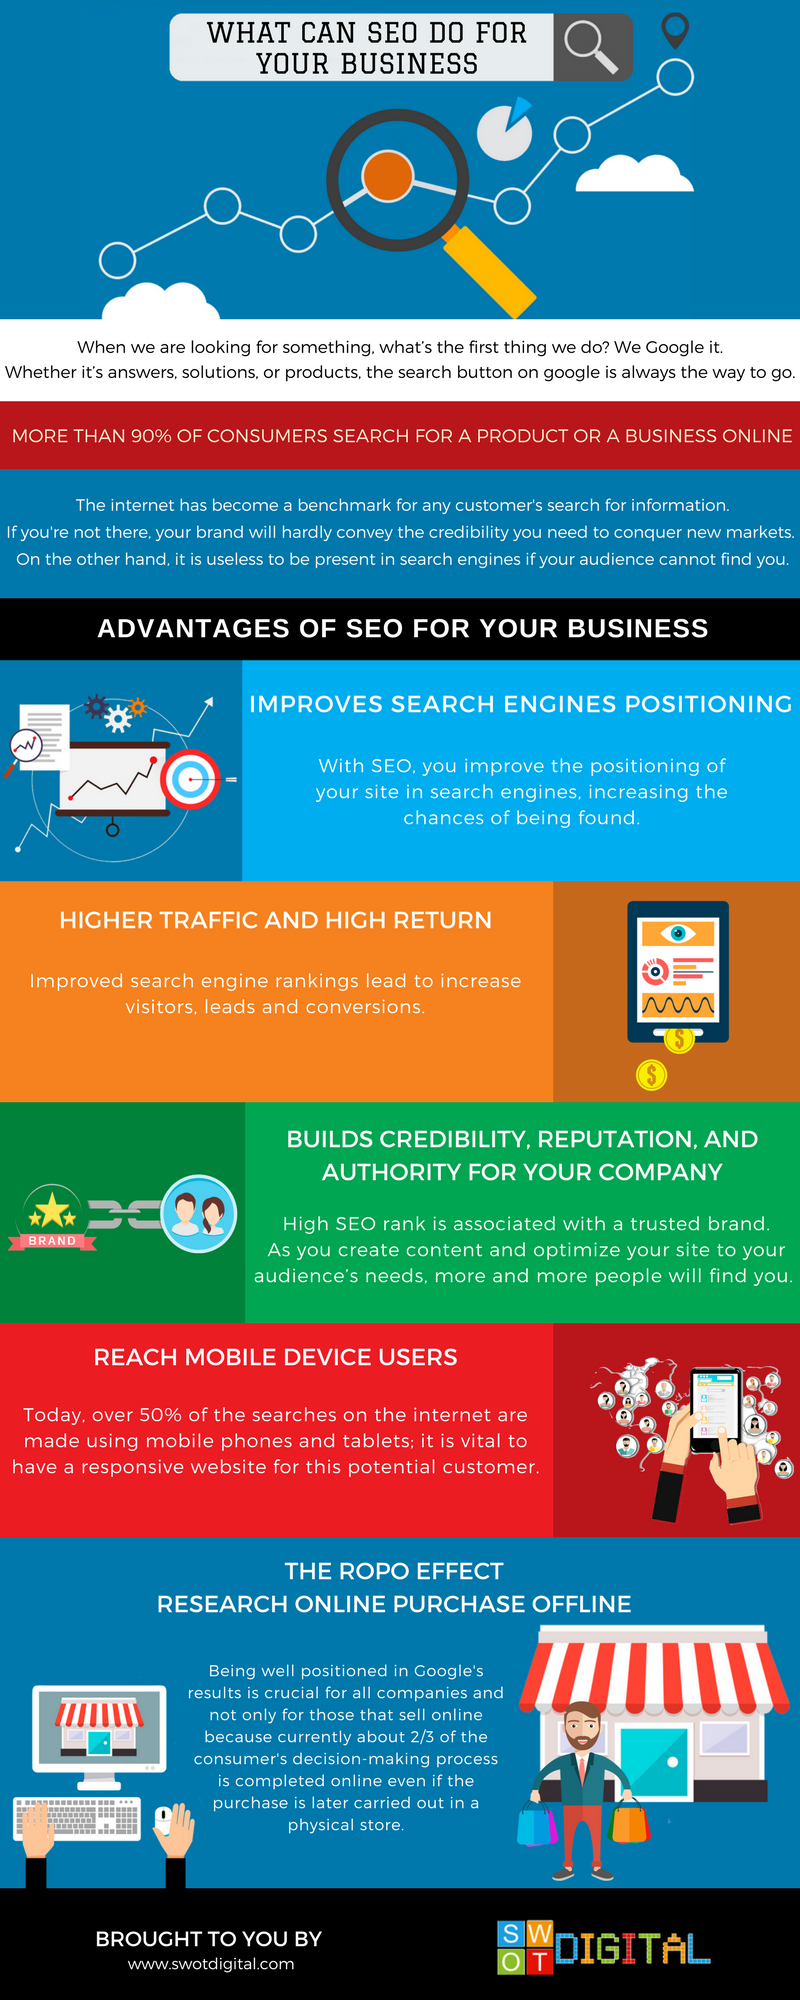 What Can SEO Do For Your Business